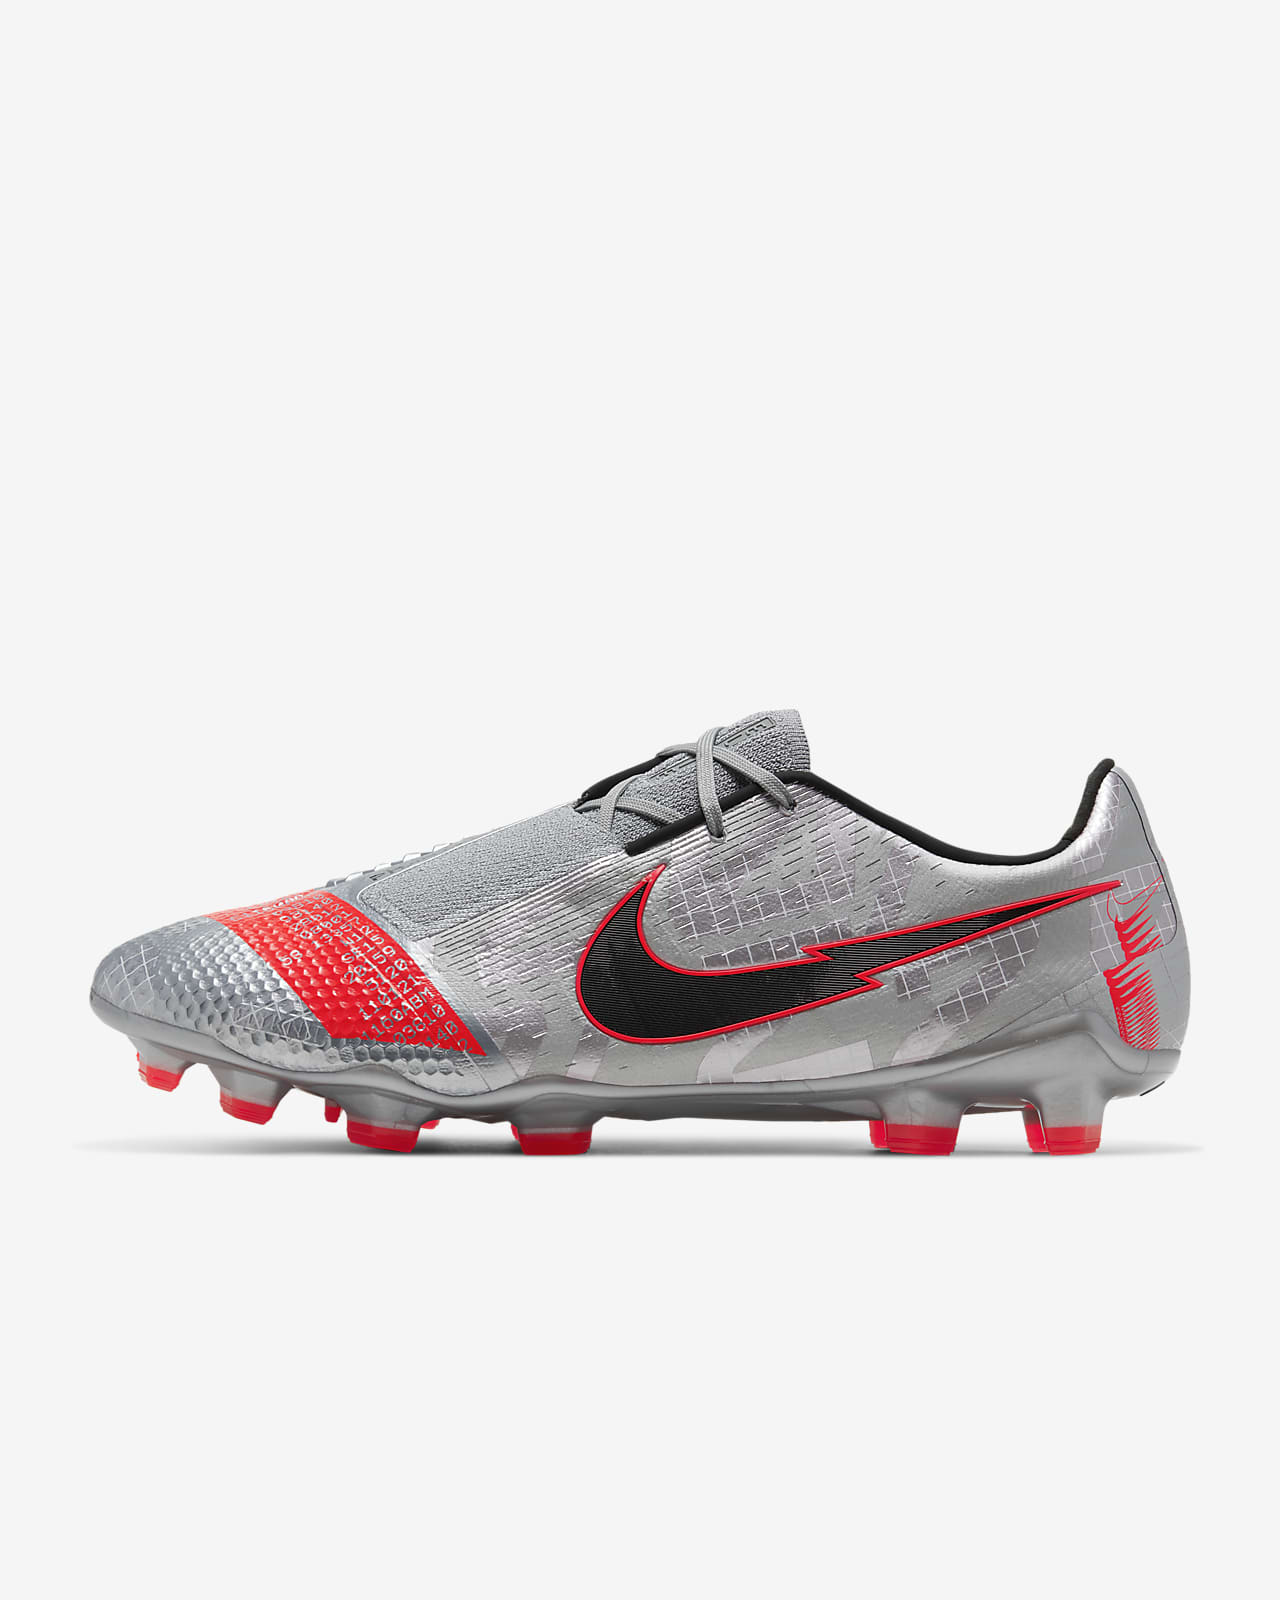 Women Shoes i 2020 | Joggesko nike, Fotballsko, Trening